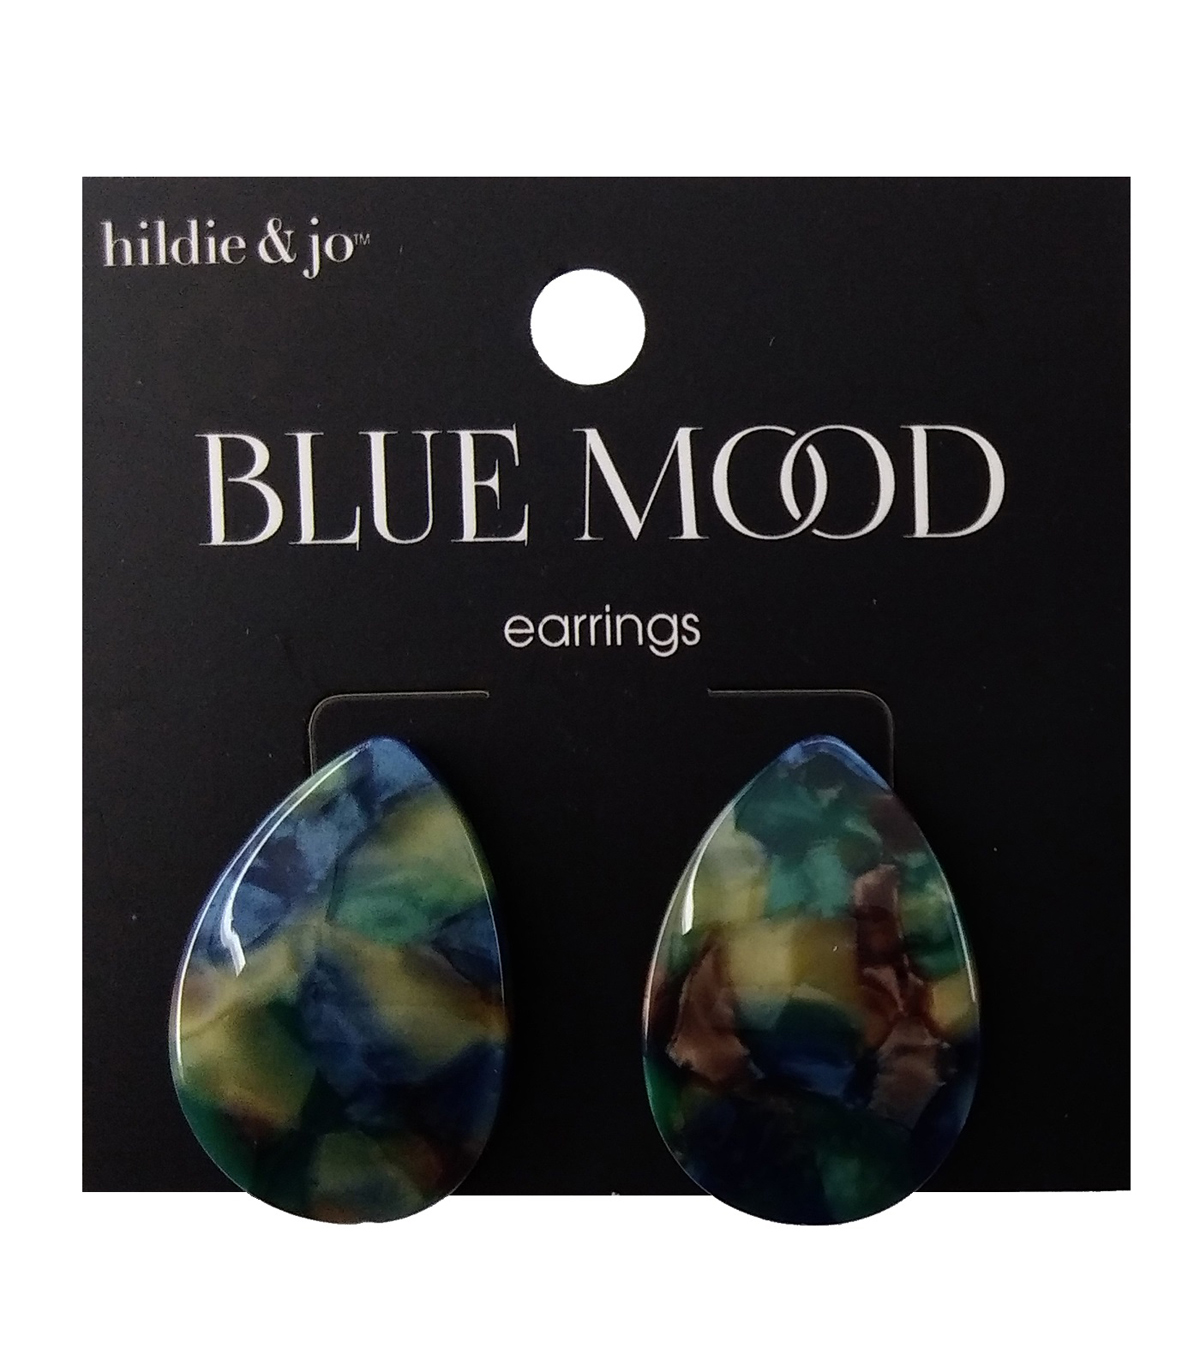 hildie & jo Blue Mood Earrings-Indigo Tortoise Teardrop